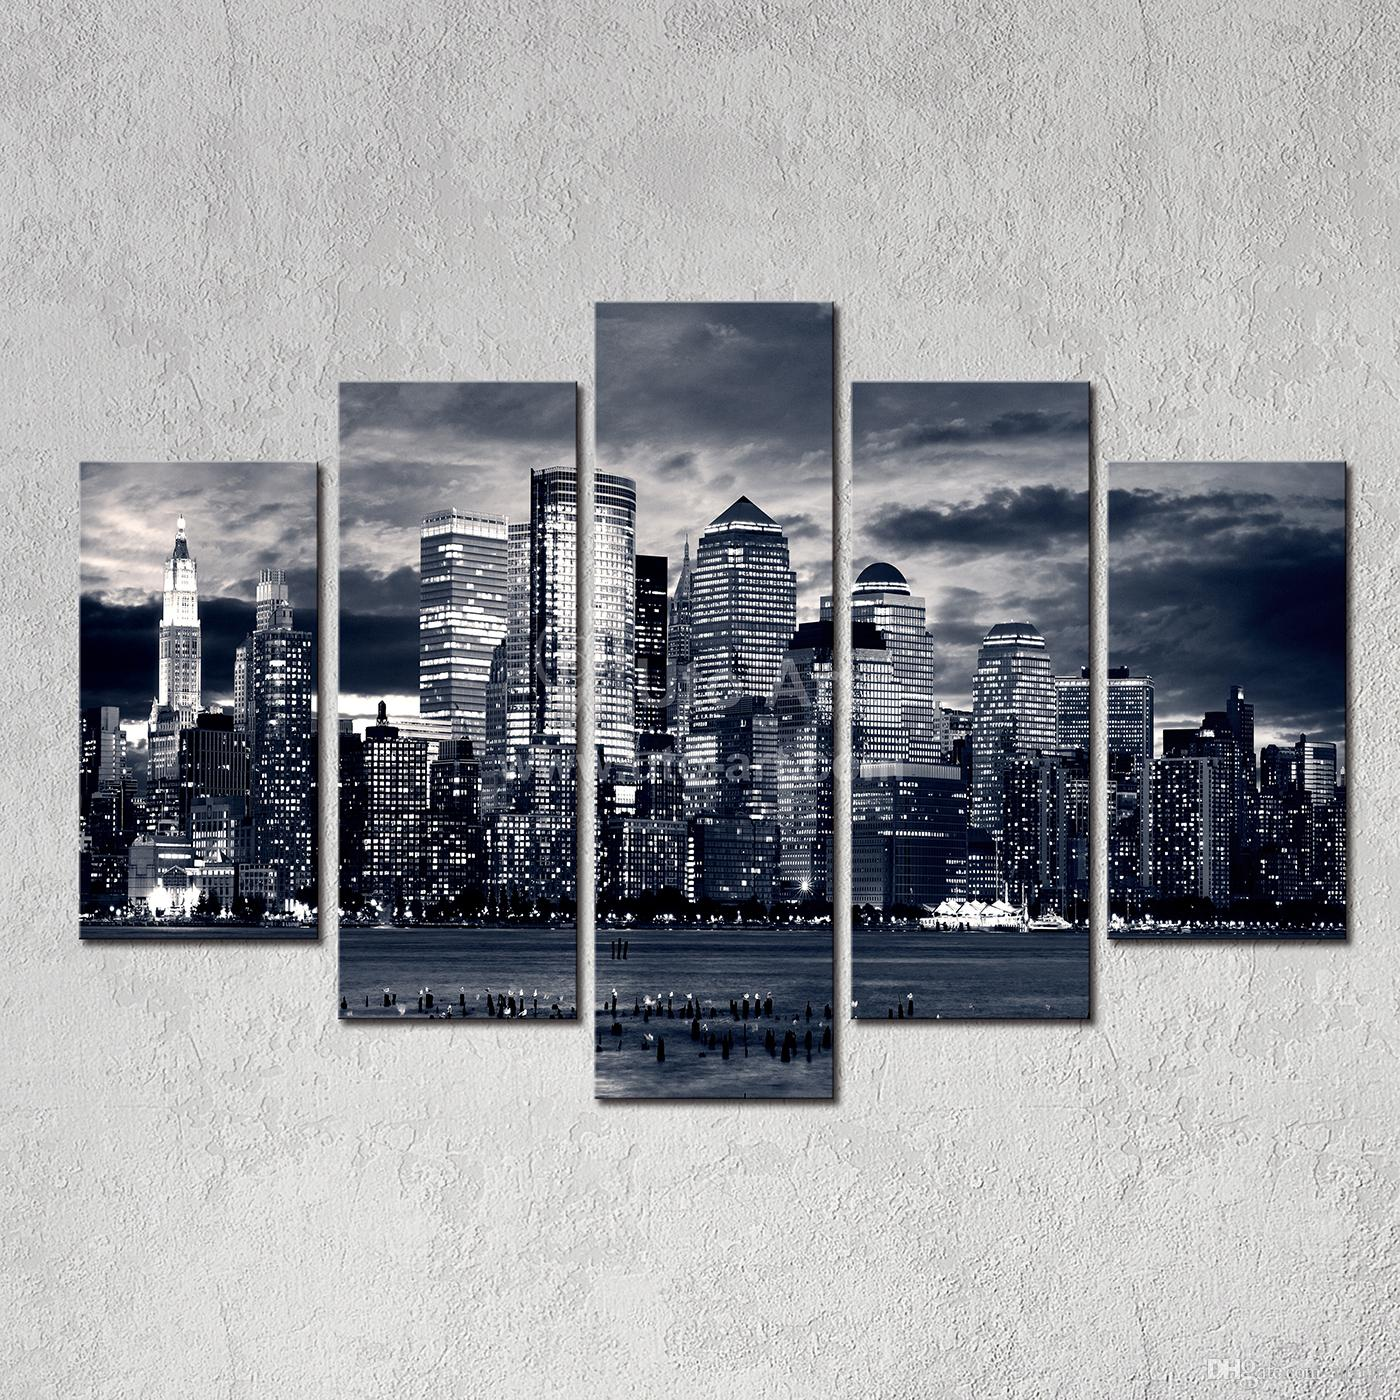 2018 Modern Home Decor New York City Painting Black White Digital Picture Print On Canvas Art